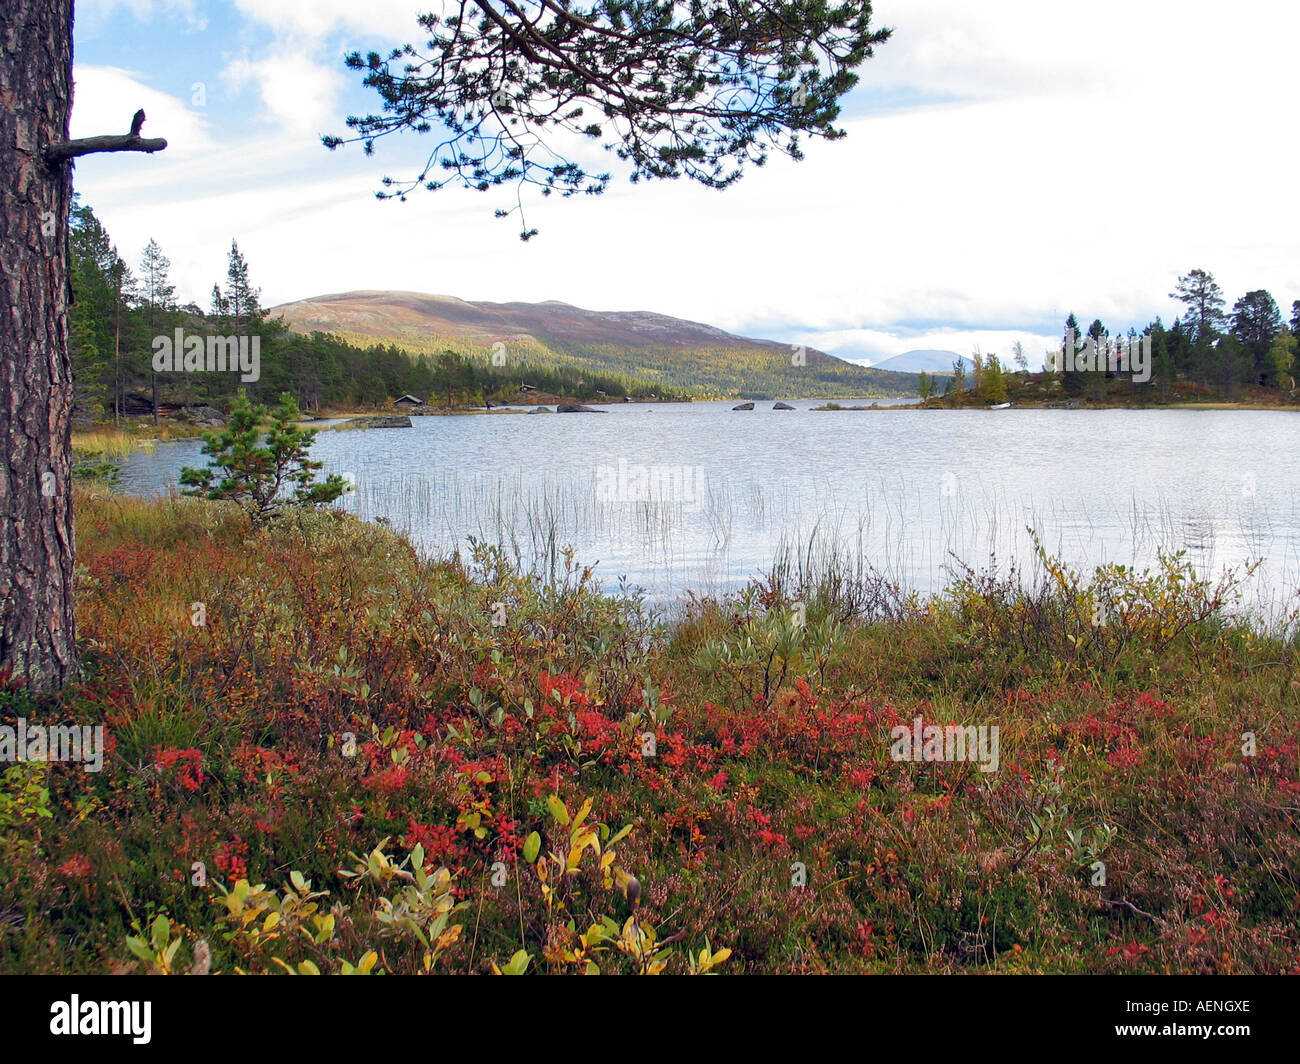 Lake on Valdresflya during the  turning of the seasons/Indian summer,  Jotunheimen, Norway - Stock Image